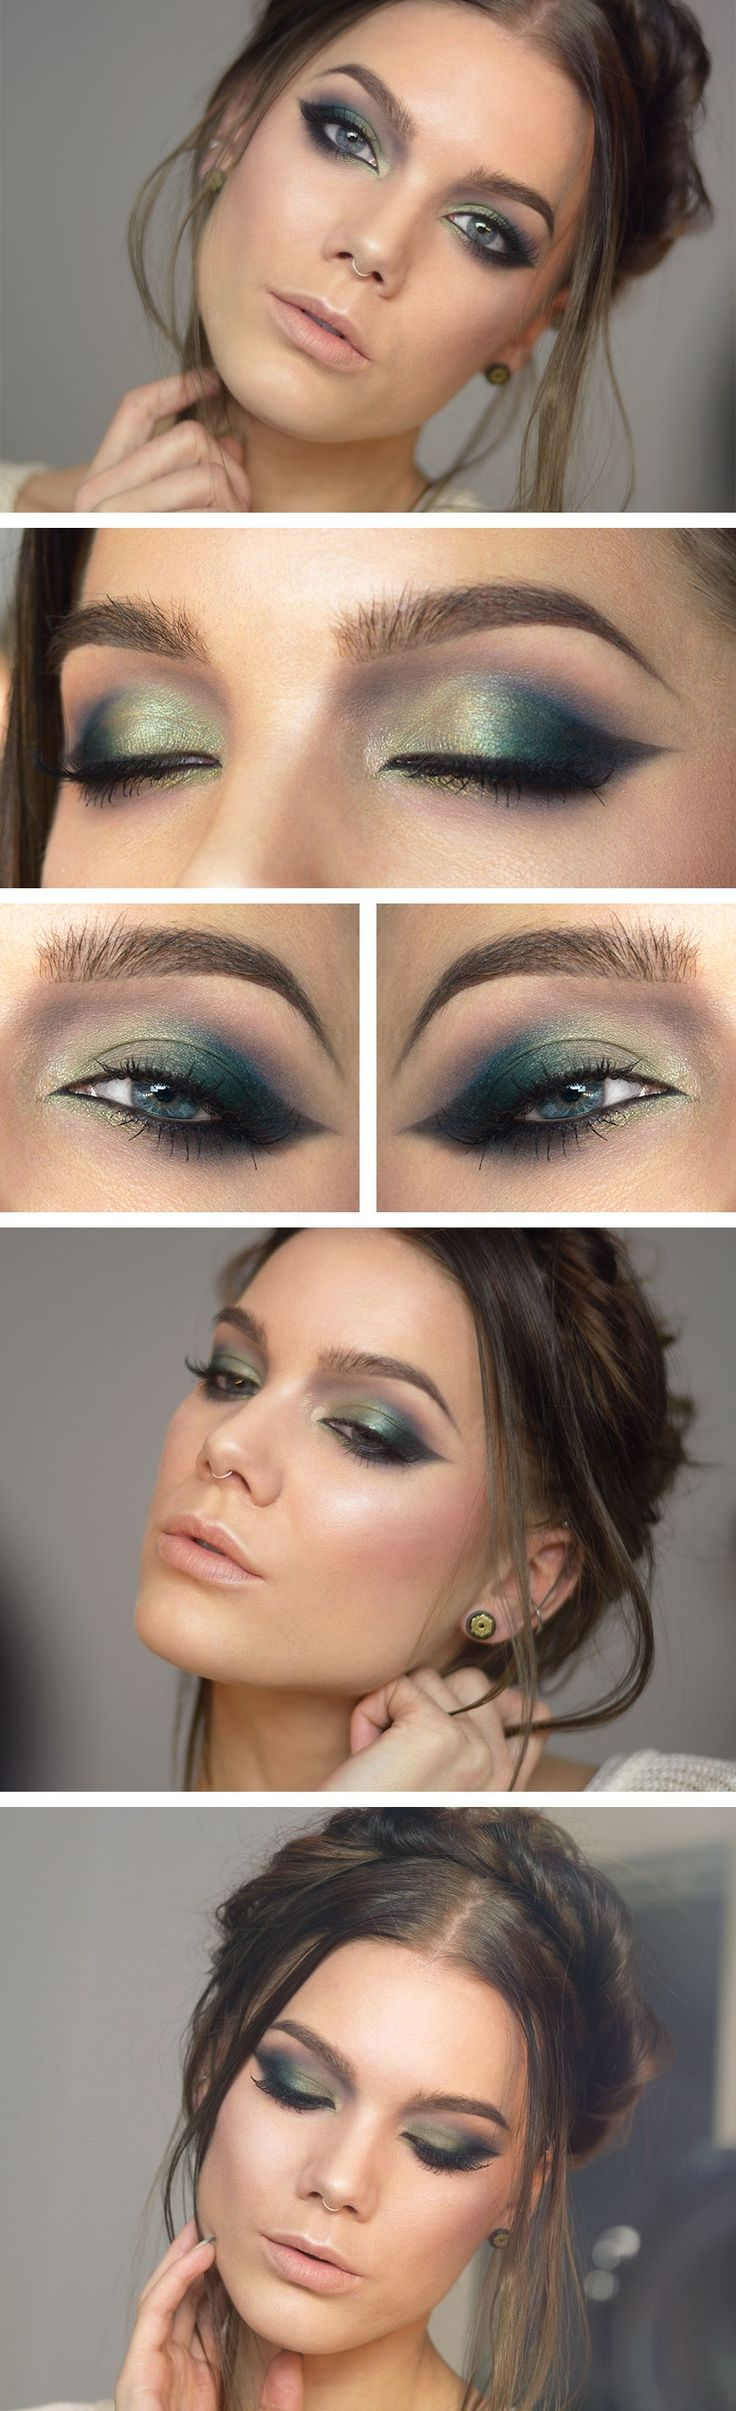 See More #Makeup #Ideas On: http://mymakeupideas.com/brown-foundation-yes-or-no/